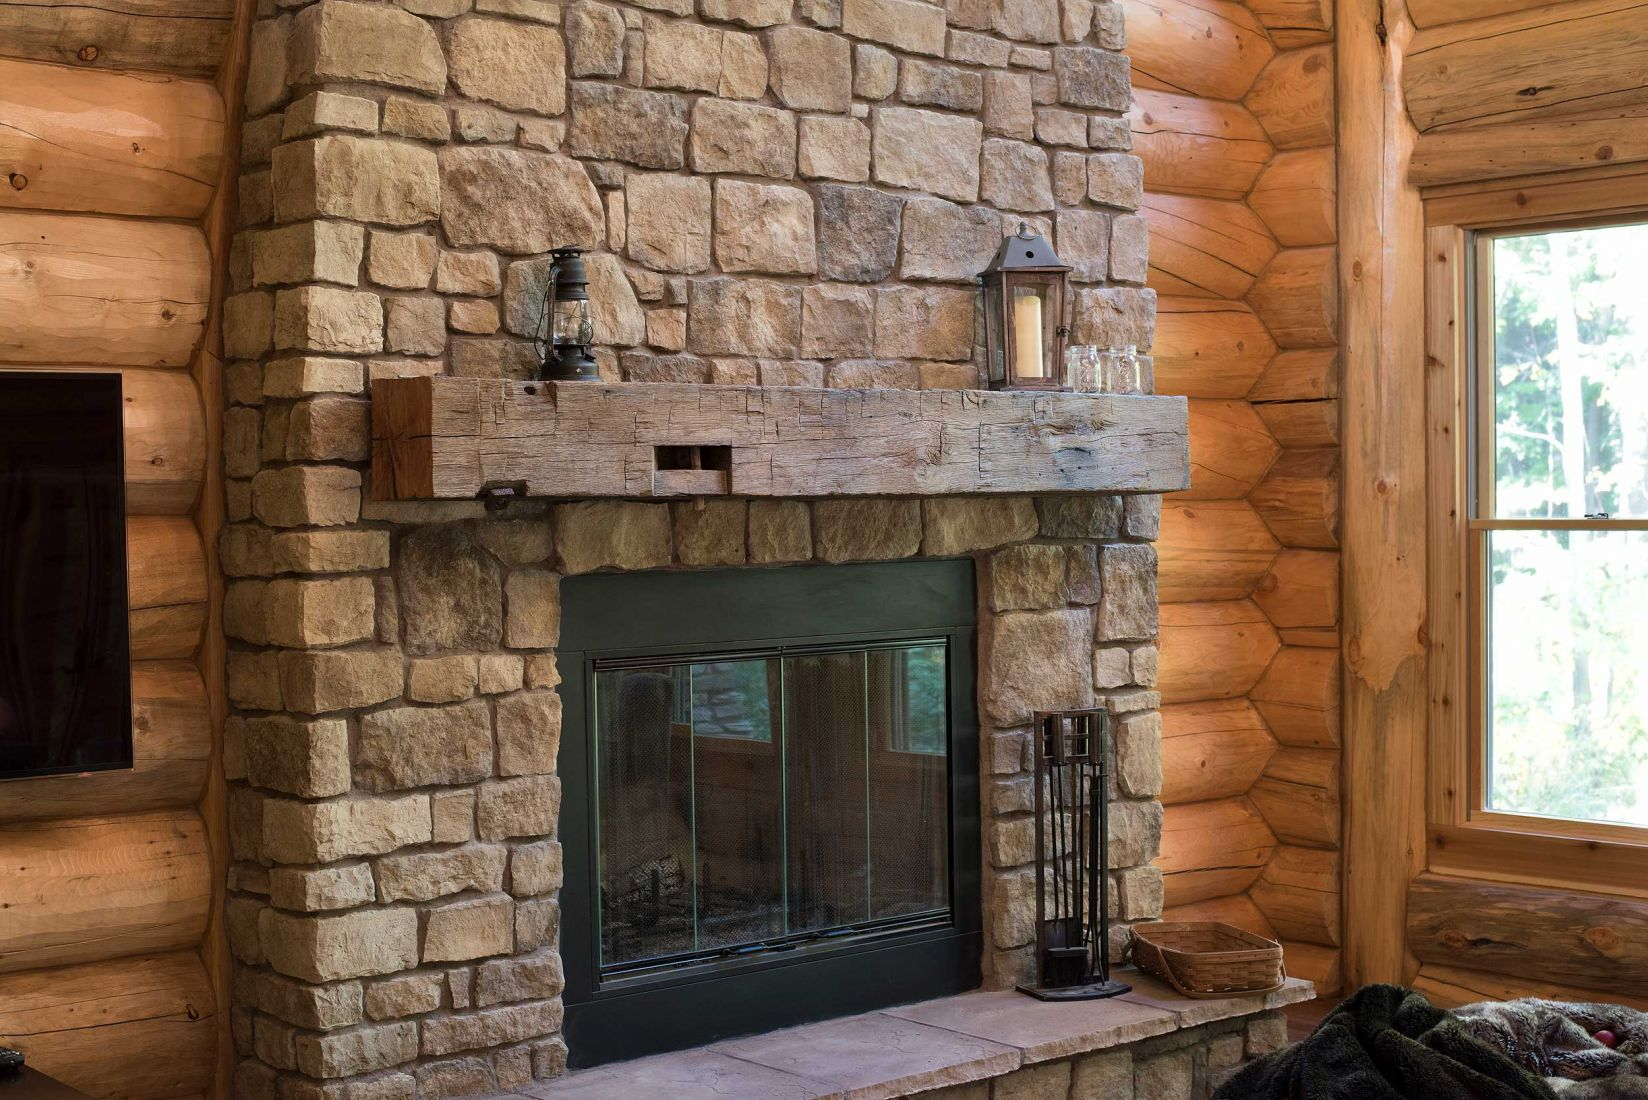 Stone covered fireplace with large wooden mantle and a raised hearth